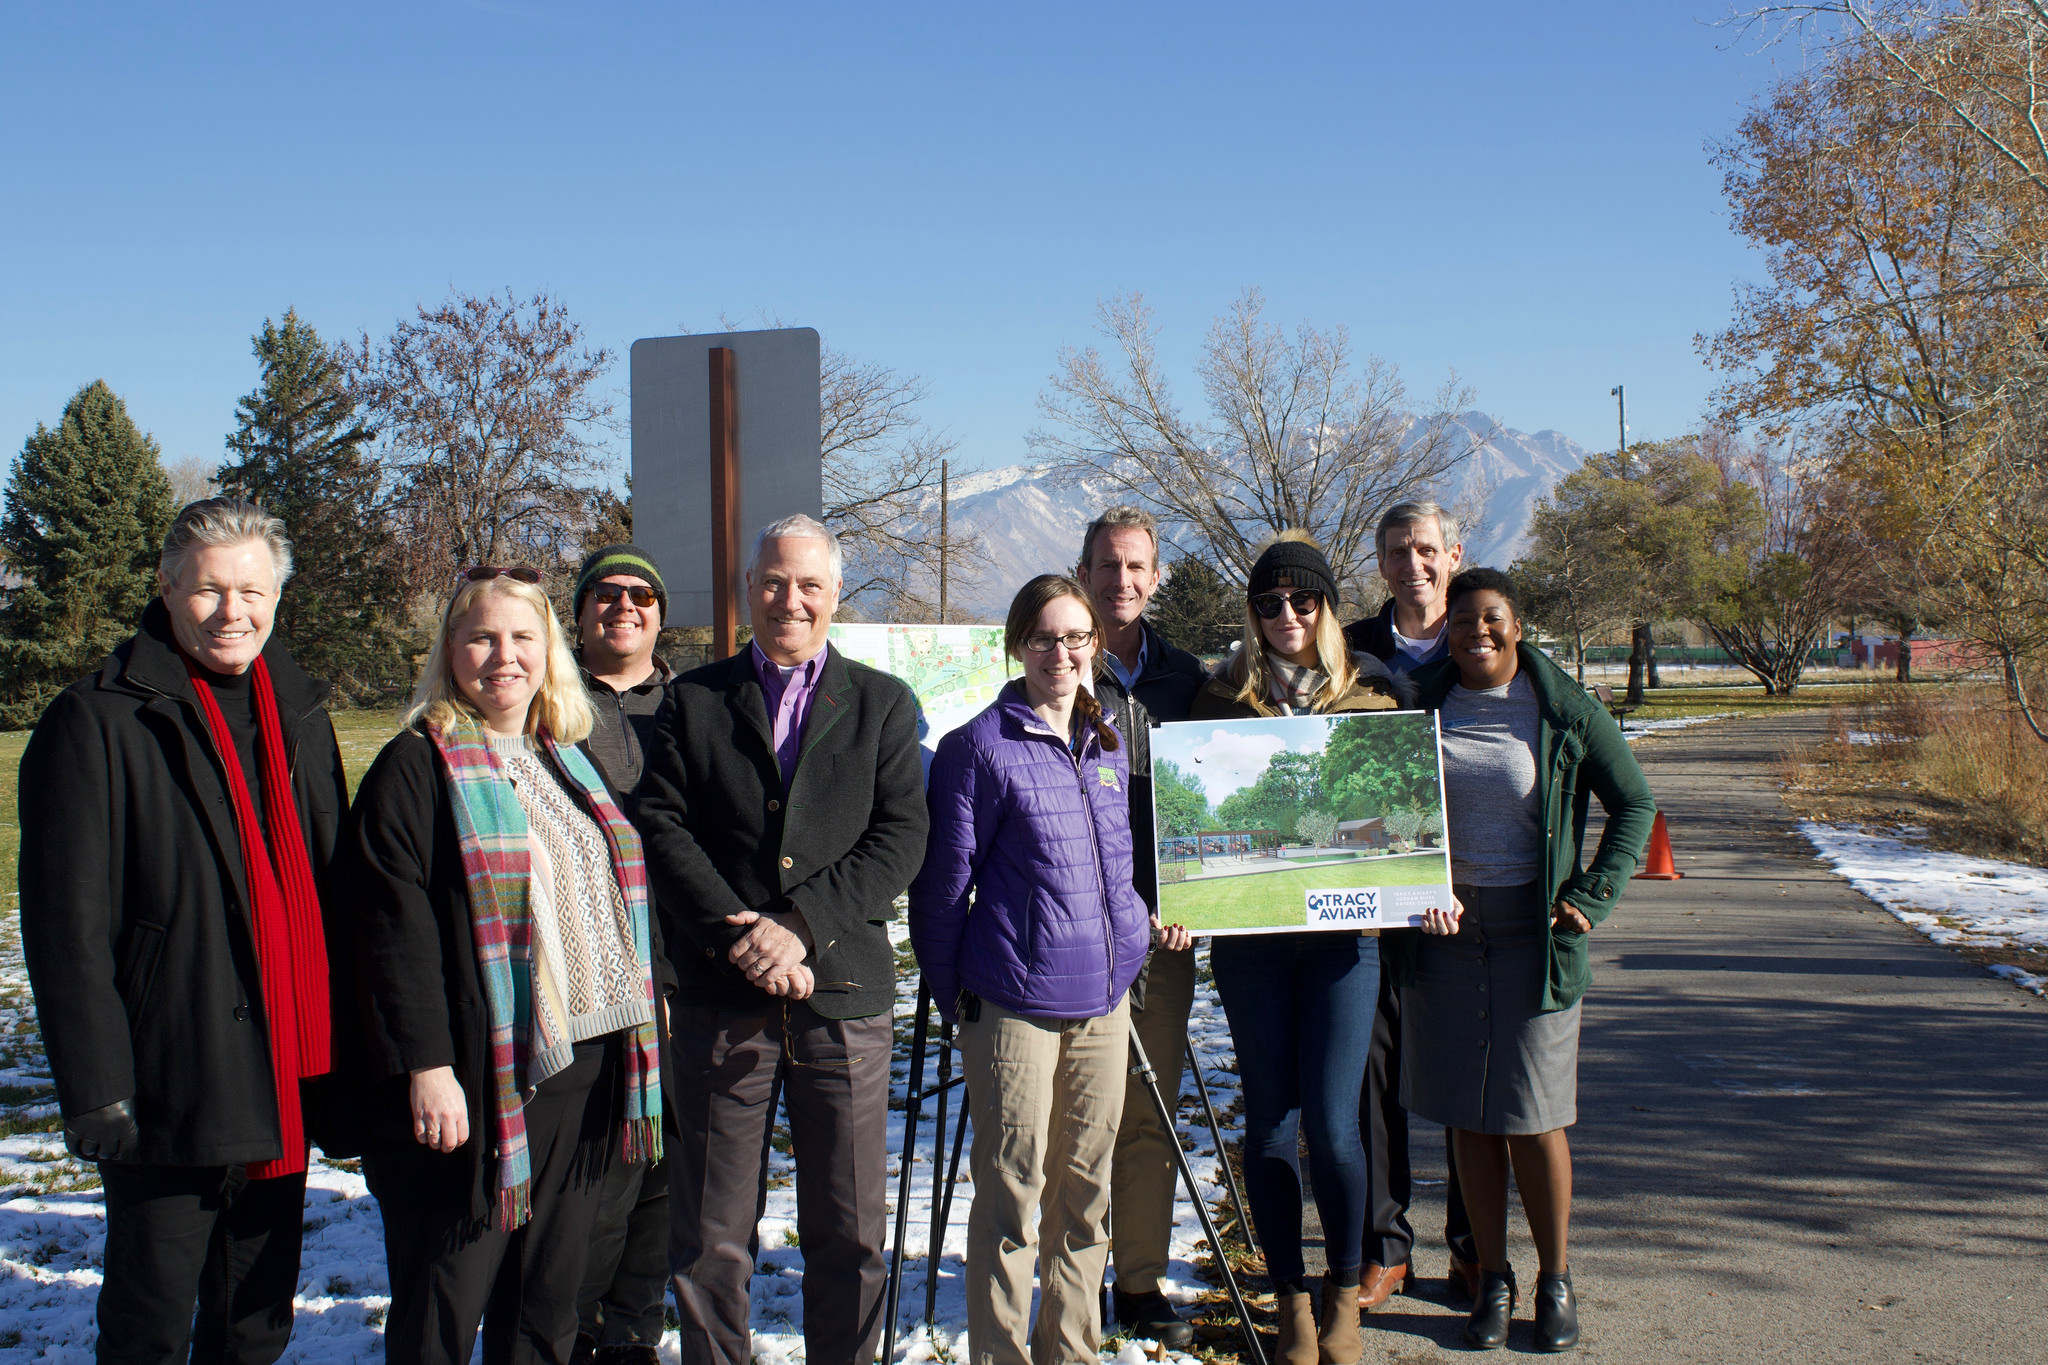 Tracy Aviary staff and board at Nature Center press event